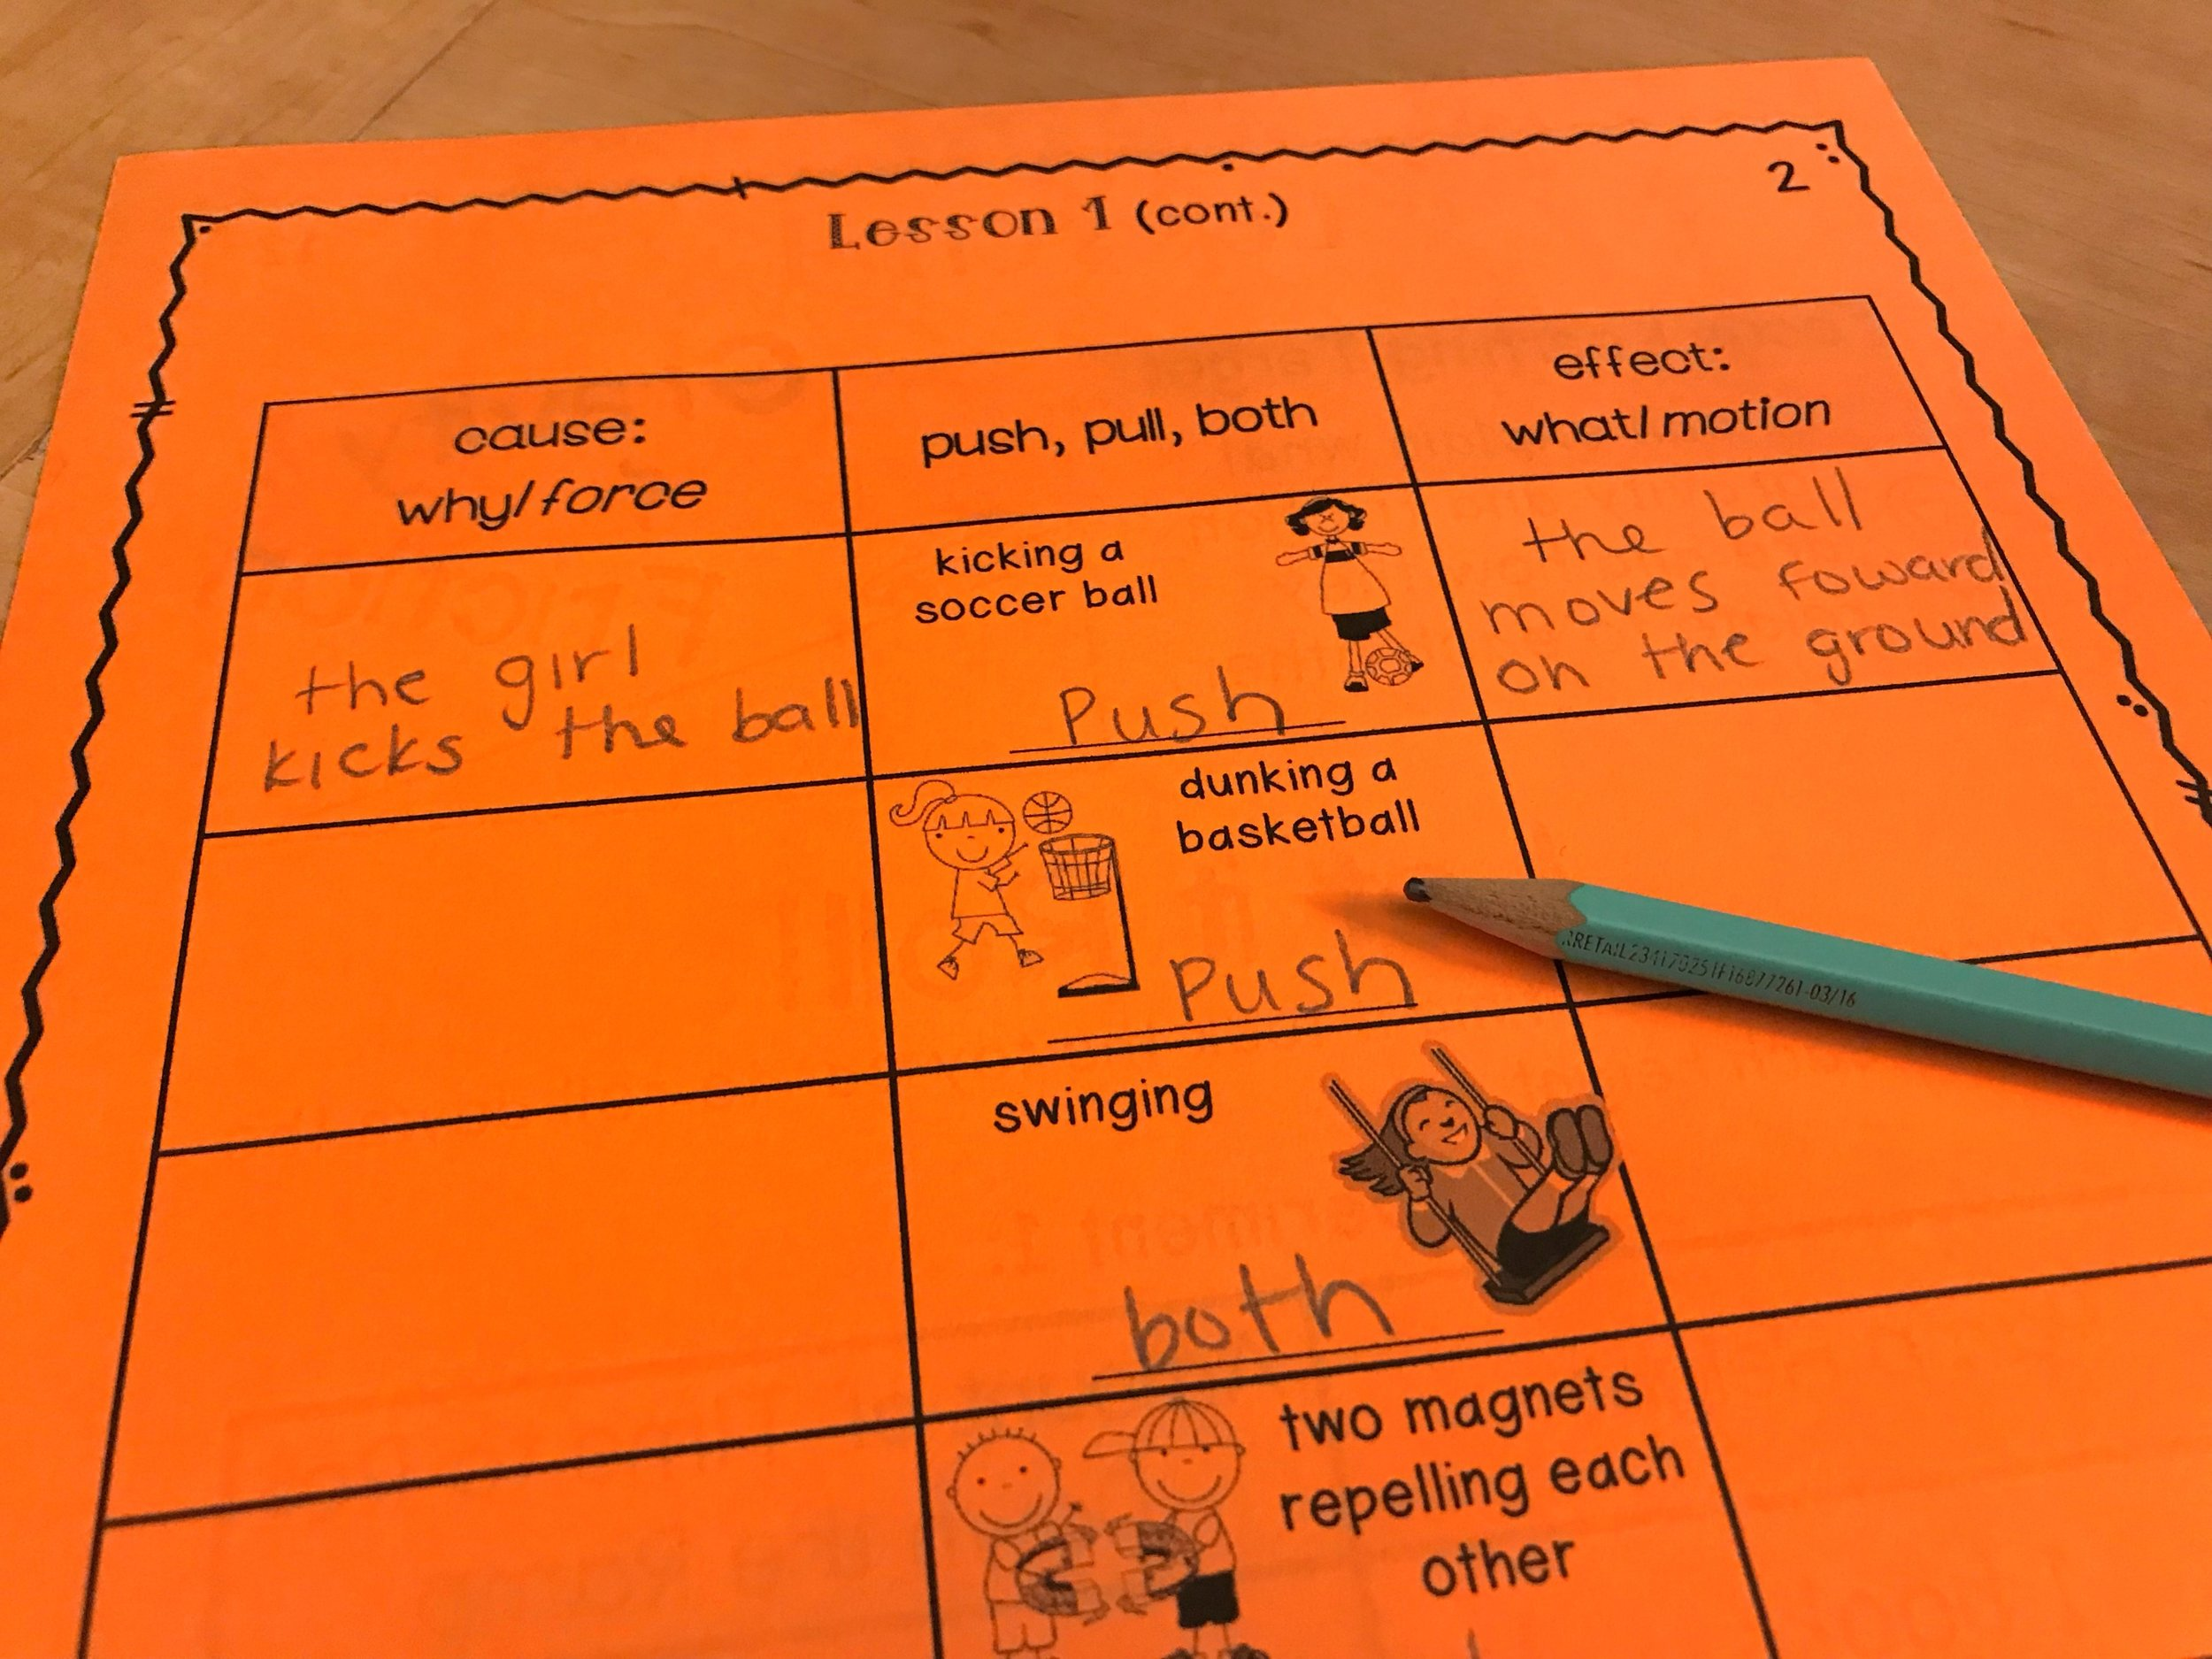 Students identify push and pull forces on a simple graphic organizer